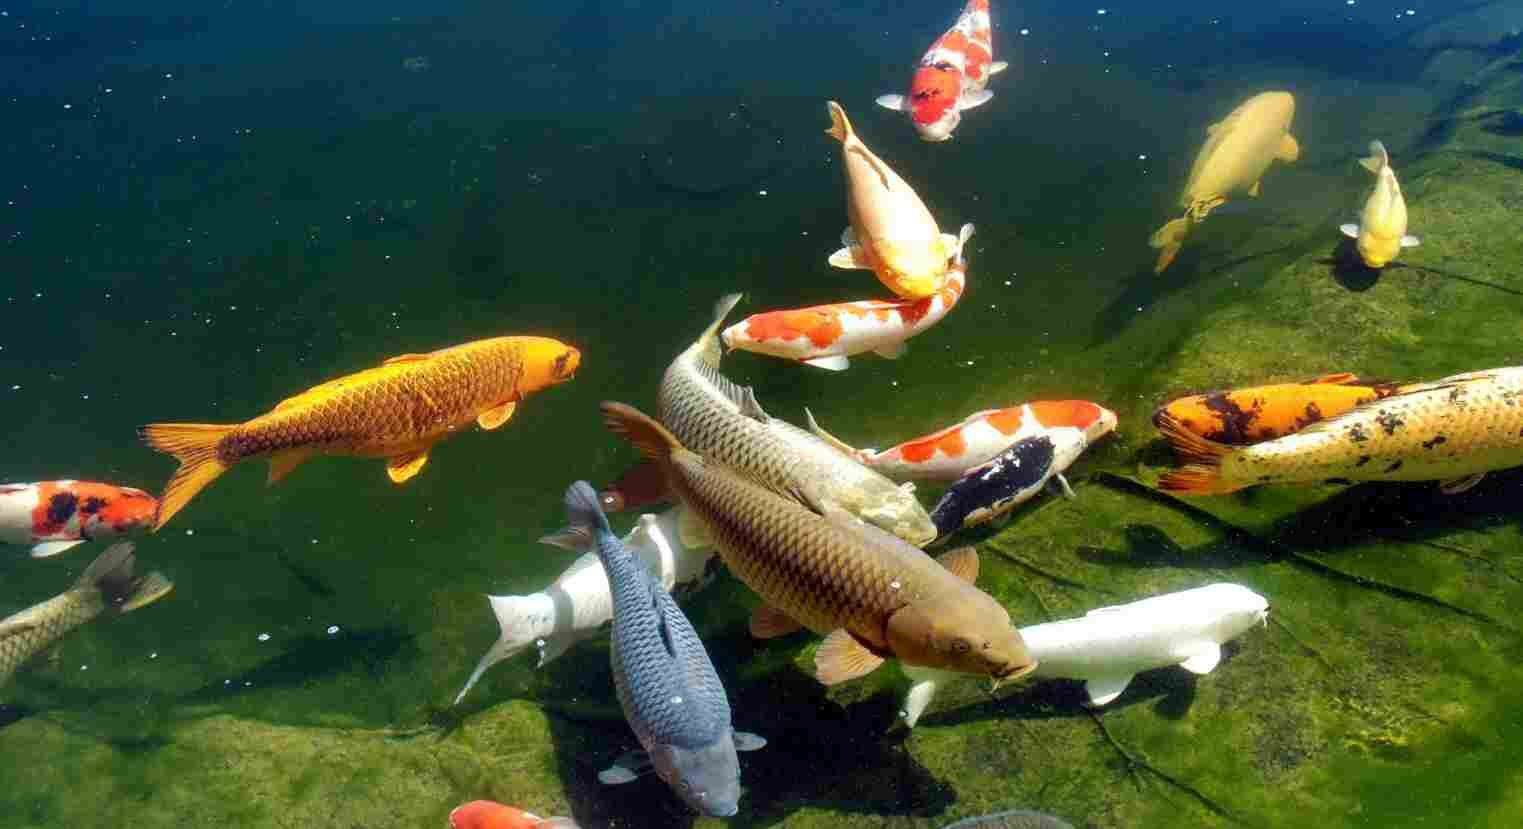 Koi fish pond wallpaper hd koi fish in the pond koi for Pics of koi fish